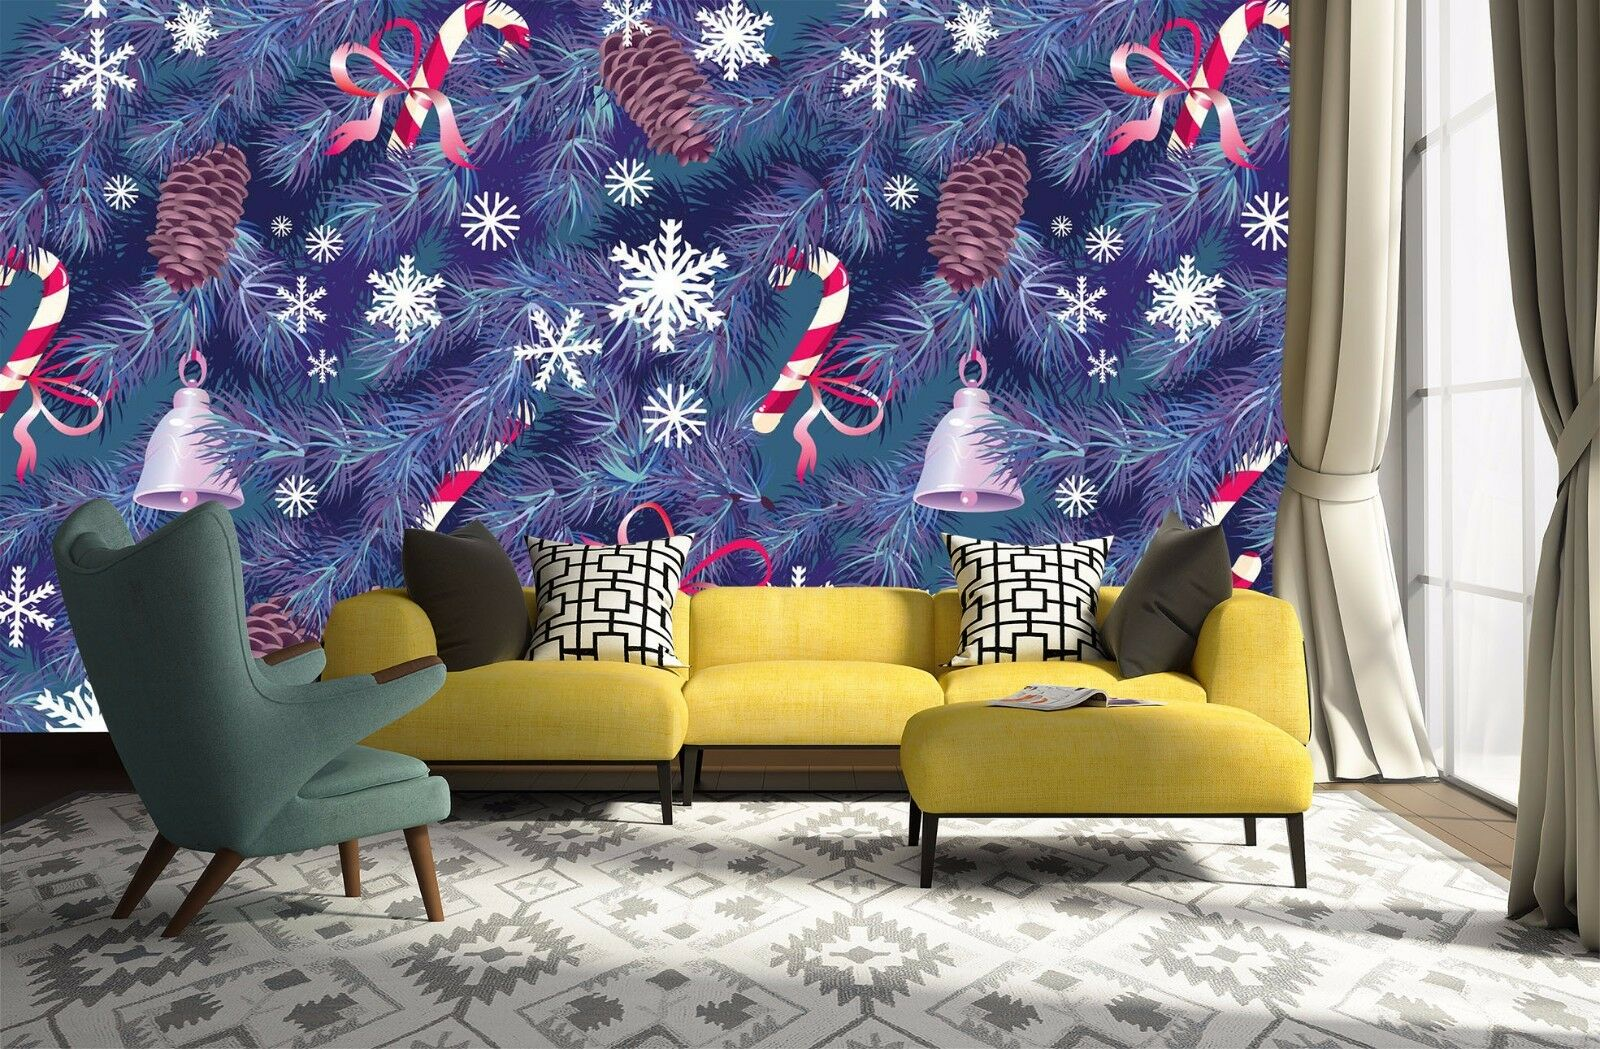 3D Christmas 53 Wallpaper Murals Wall Print Wallpaper Mural AJ WALL AU Kyra